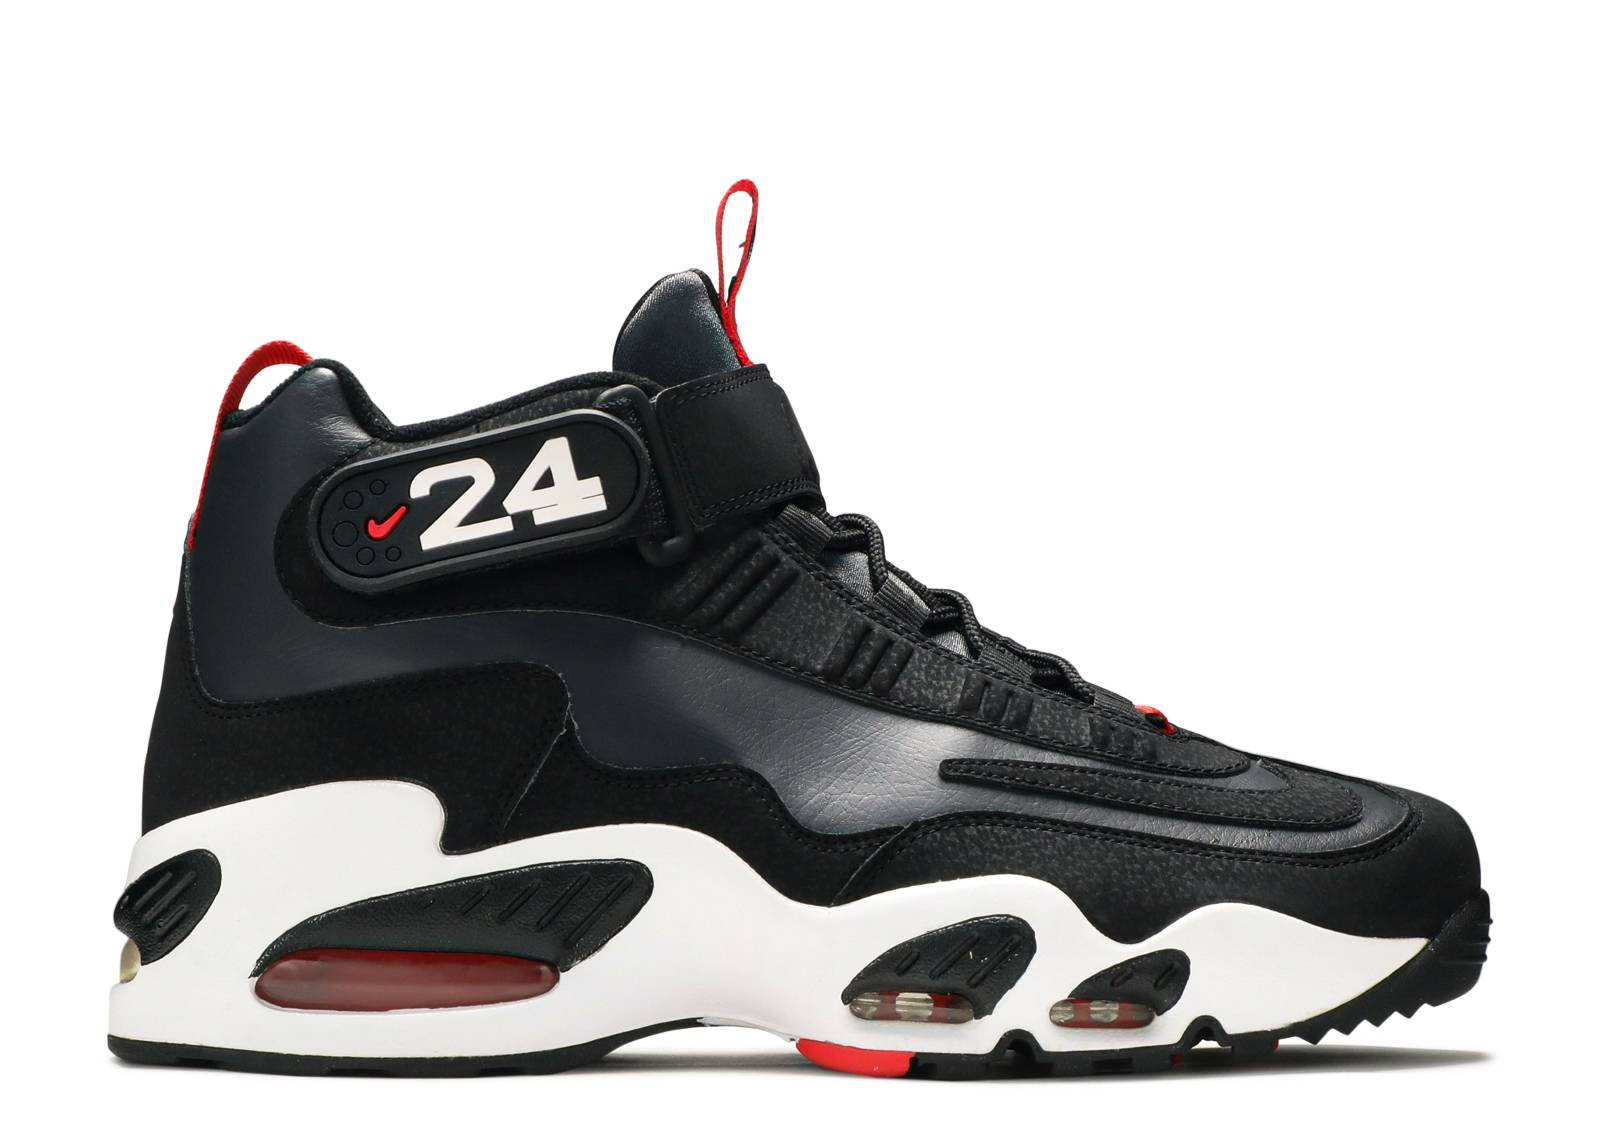 ... store air griffey max 1 nike 354912 002 anthracite black hot red white  flight club 23fde 2cd77b99f